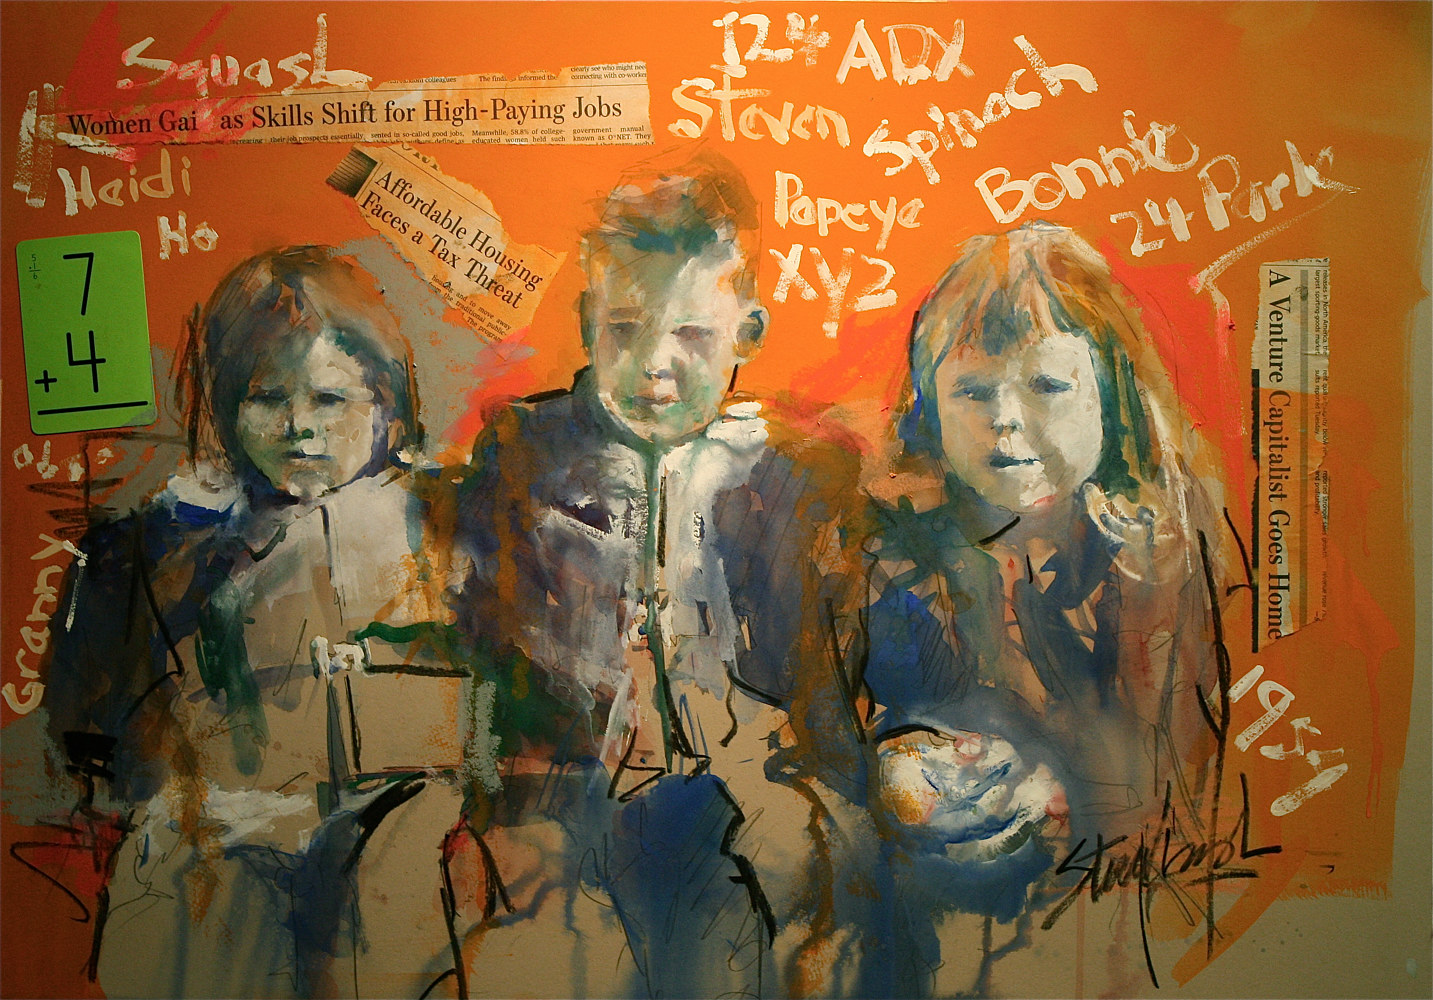 Mixed-media artwork Three Friends (Heidi, Steve and Bonnie) by Nella Lush